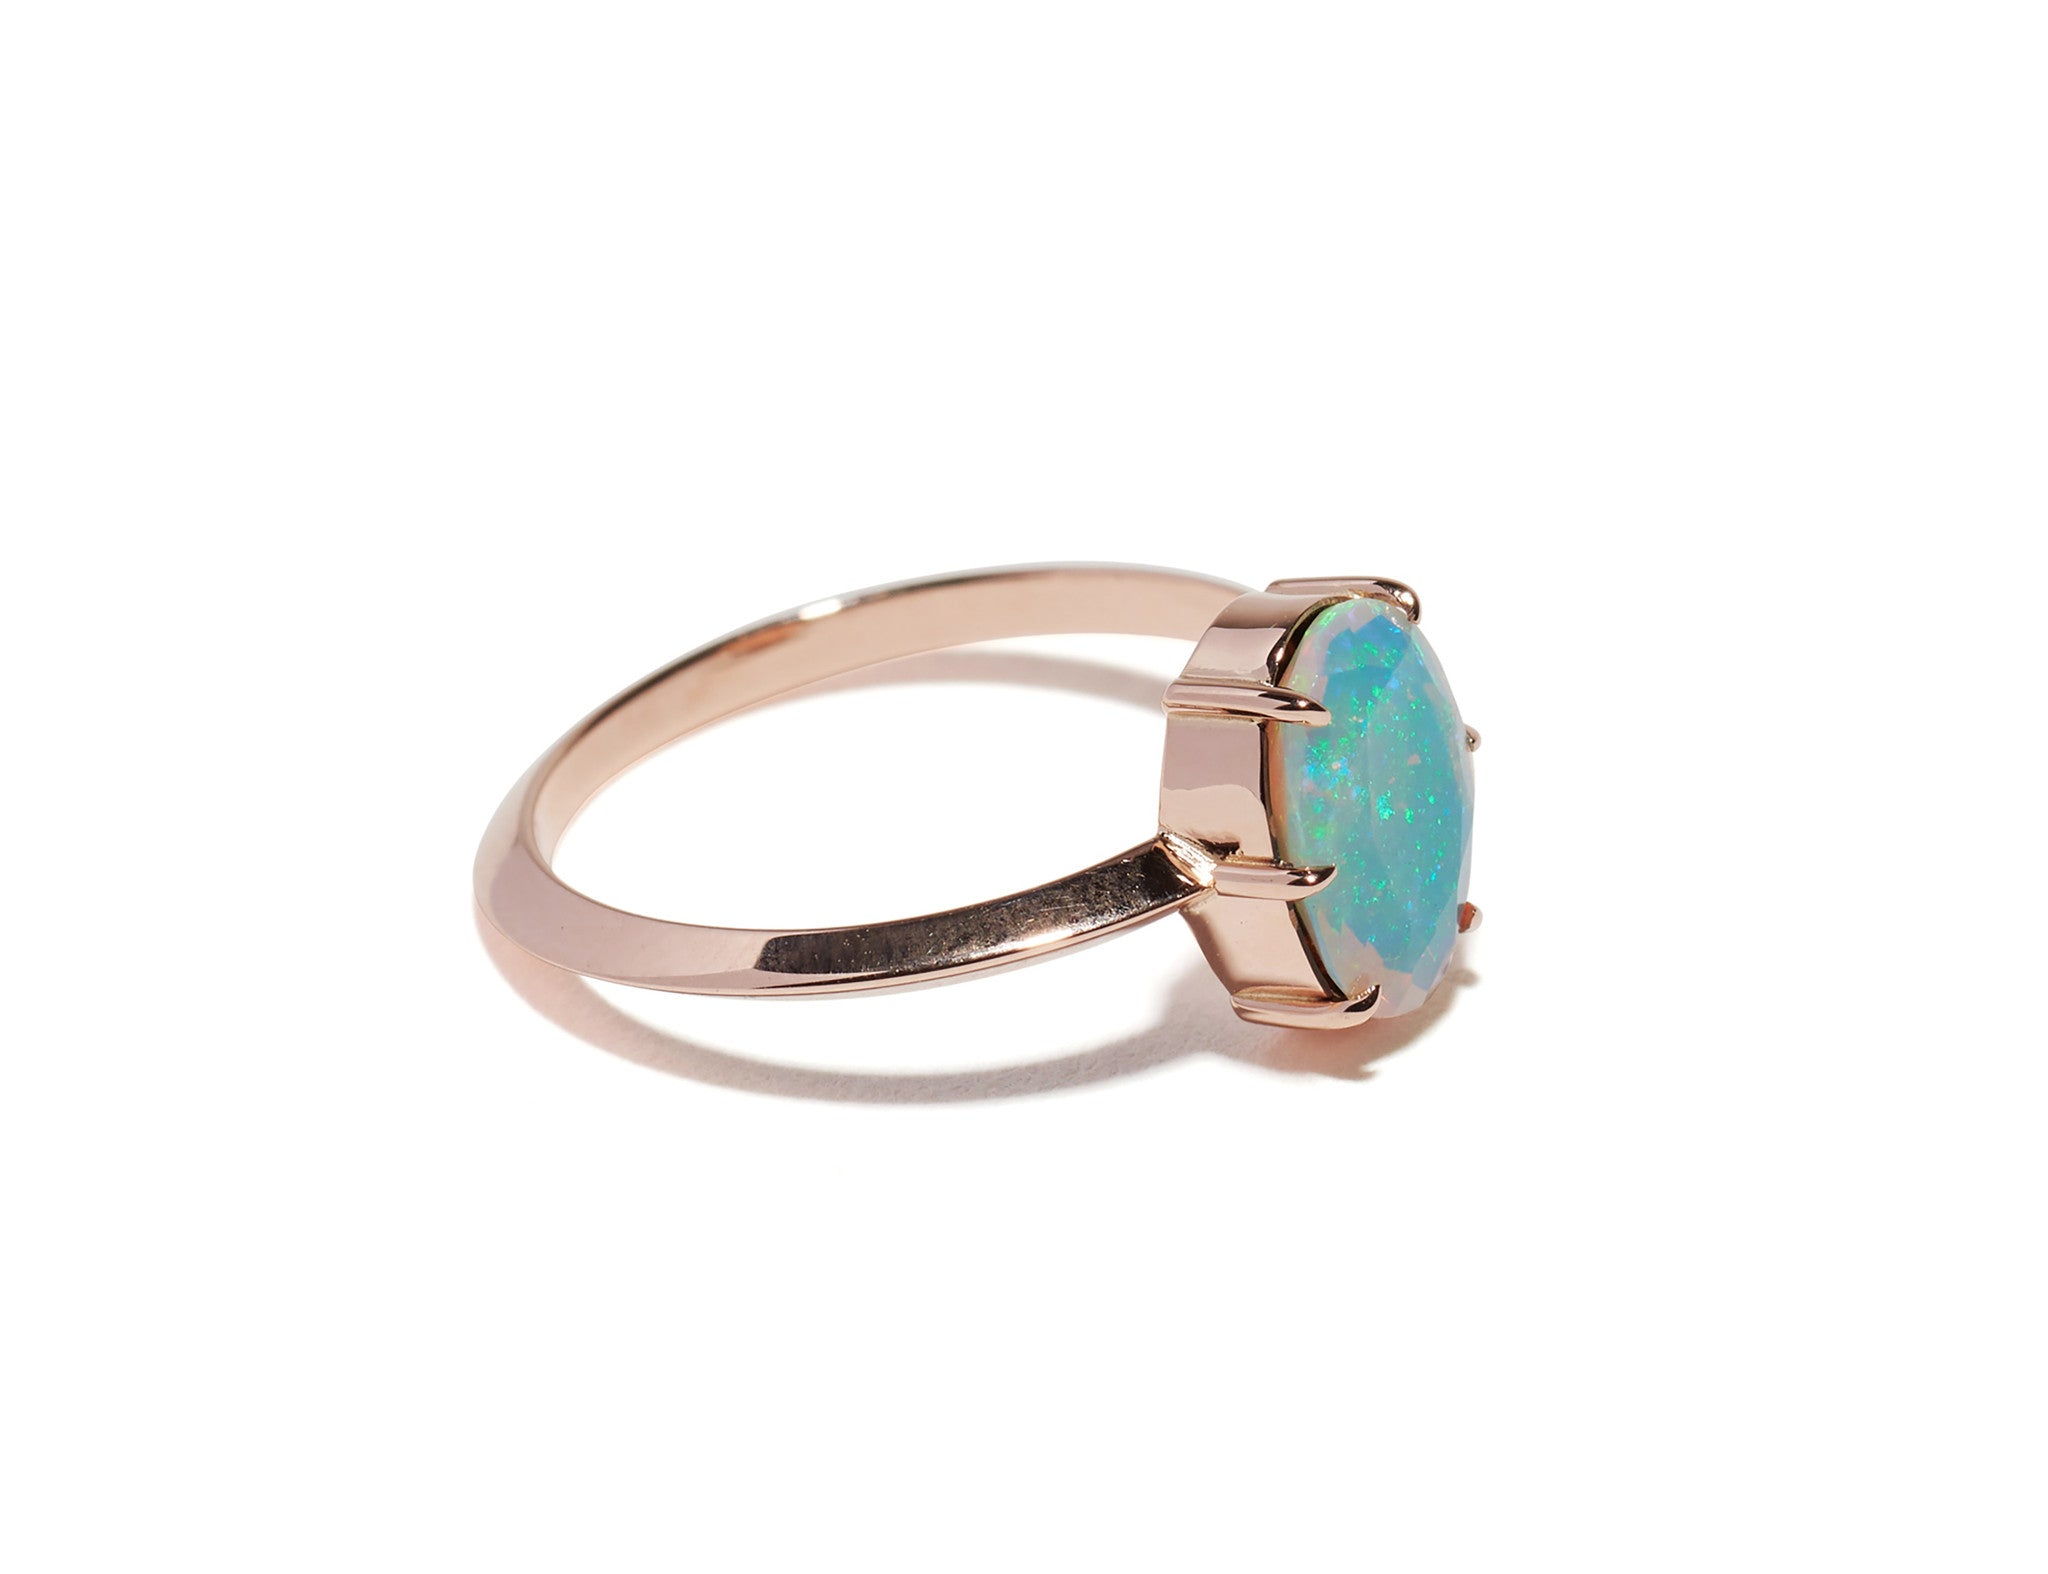 6 Prong Vertical Oval Opal Ring Wendy Nichol Fine Jewelry Designer Handmade in NYC solid 14k Gold